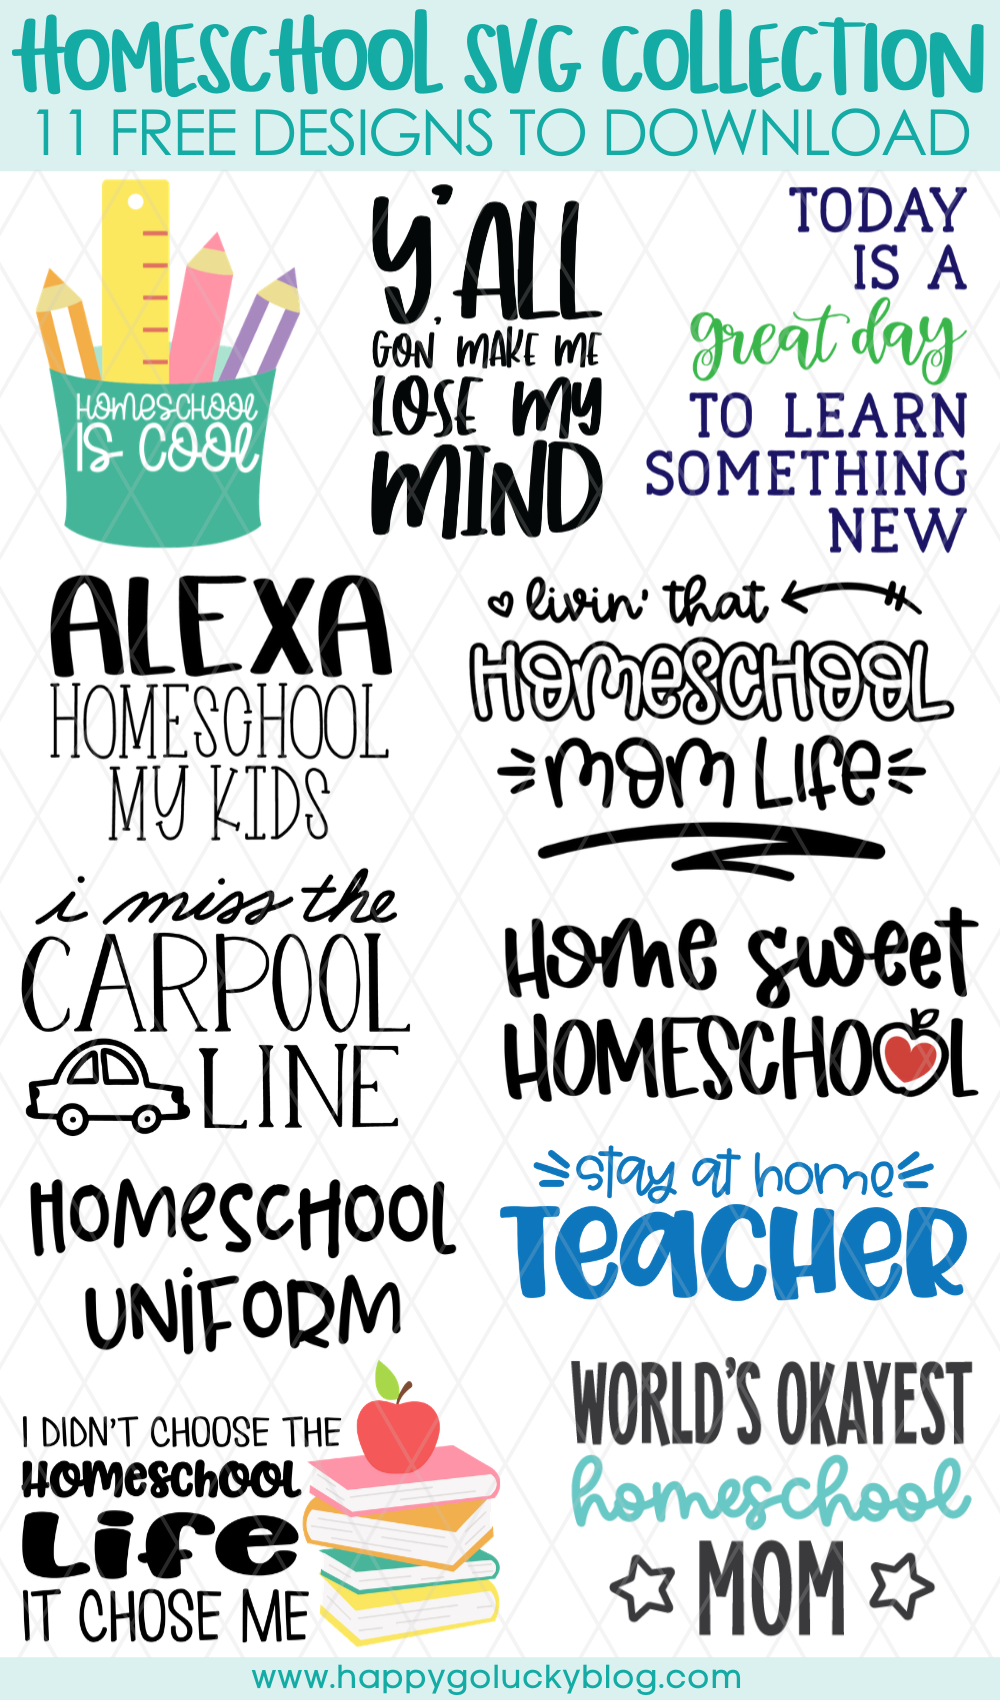 Homeschool SVG Collection 11 Free SVG Cut Files